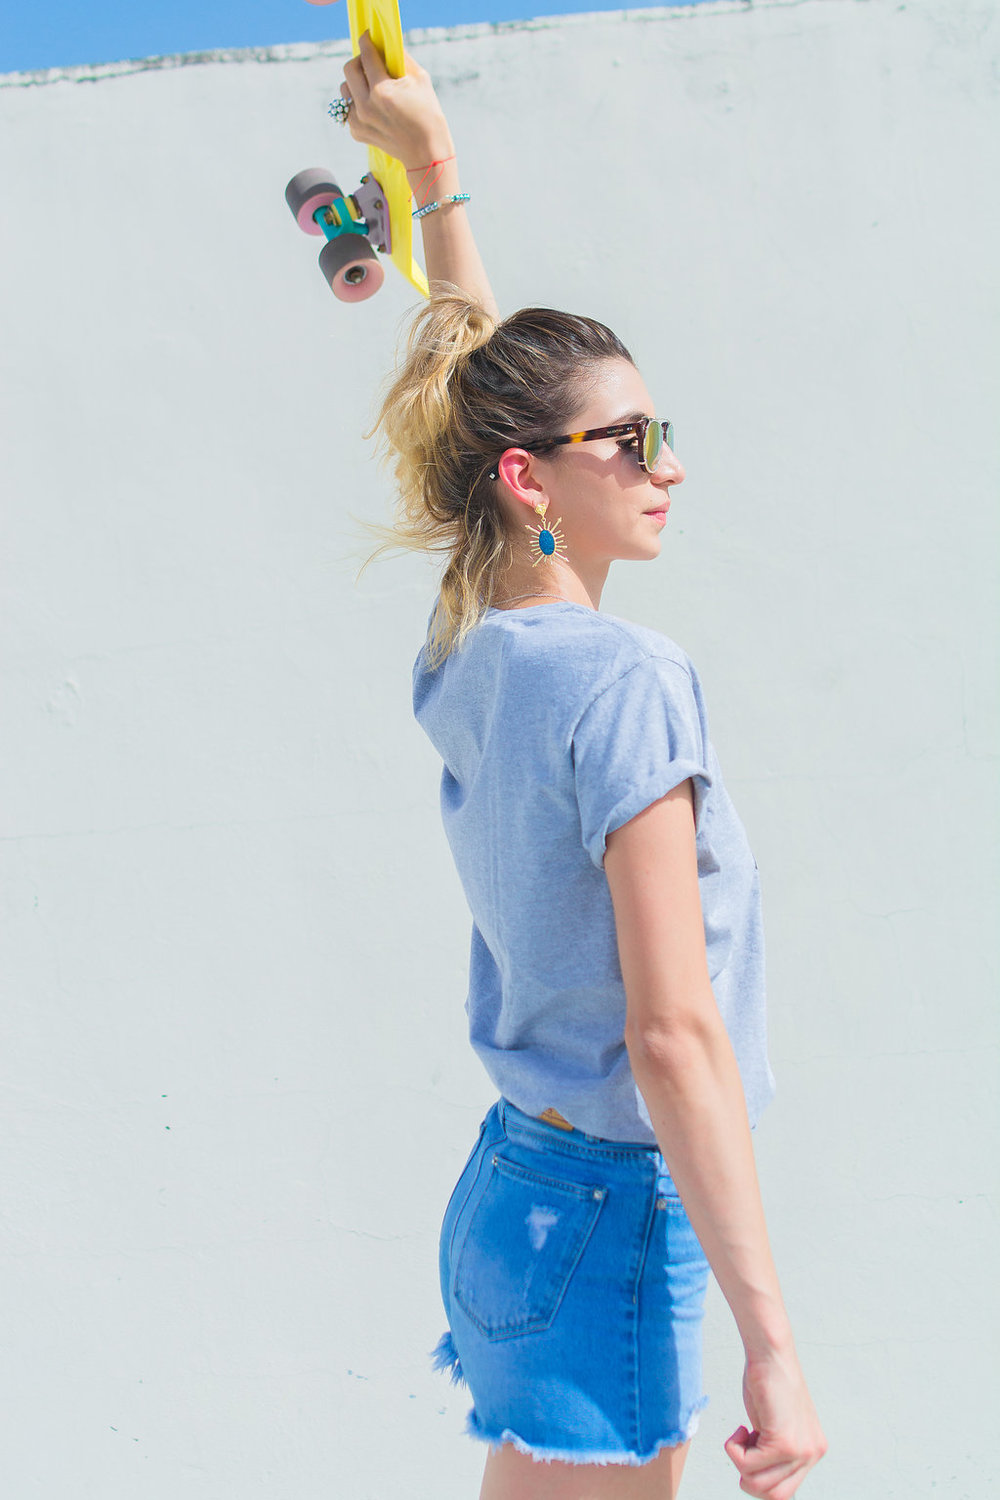 Rayitos de Sol Earrings @theb1rd / Gucci Parody Tee / Adidas Gazelle Sneakers / Valentino Sunnies